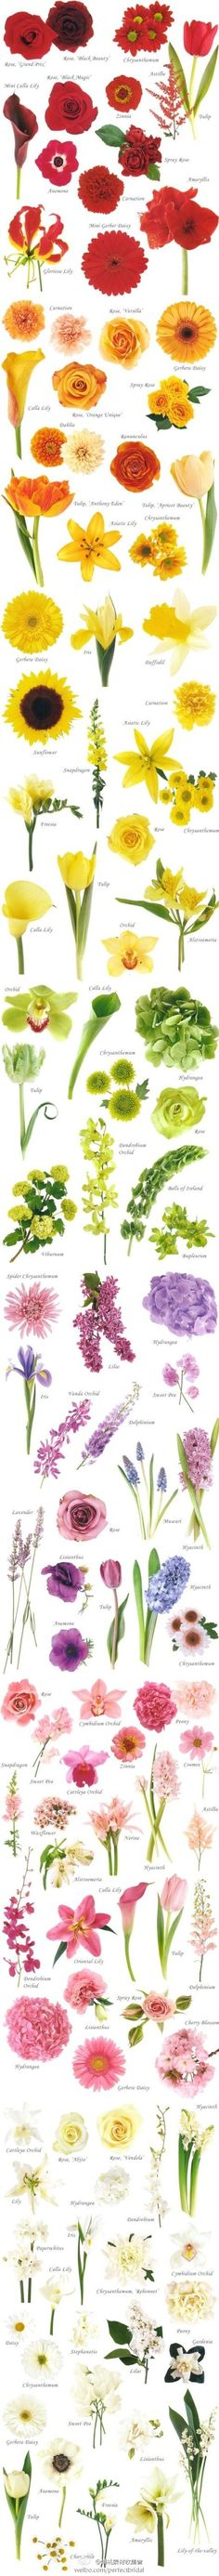 Flower Chart...really helpful